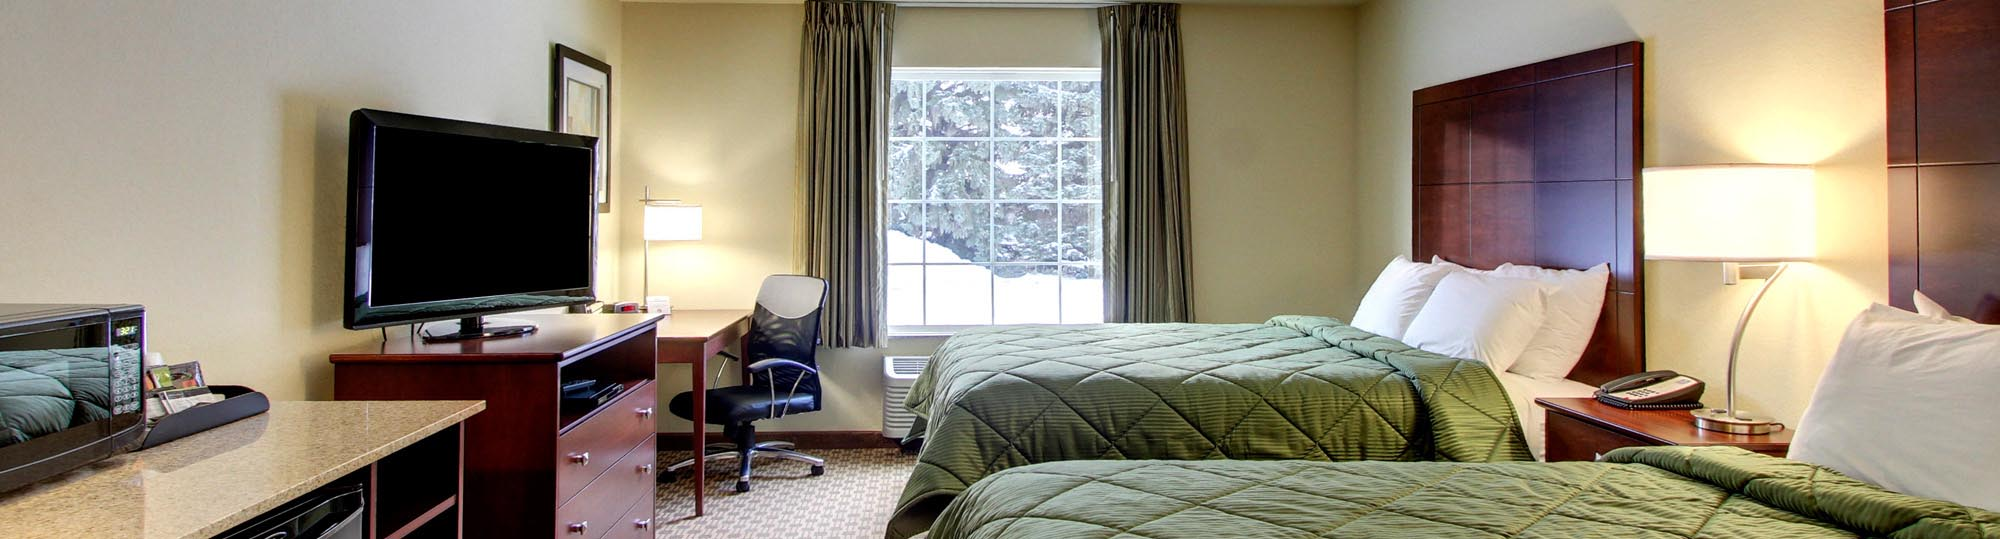 Cobblestone Inn and Suites Rugby